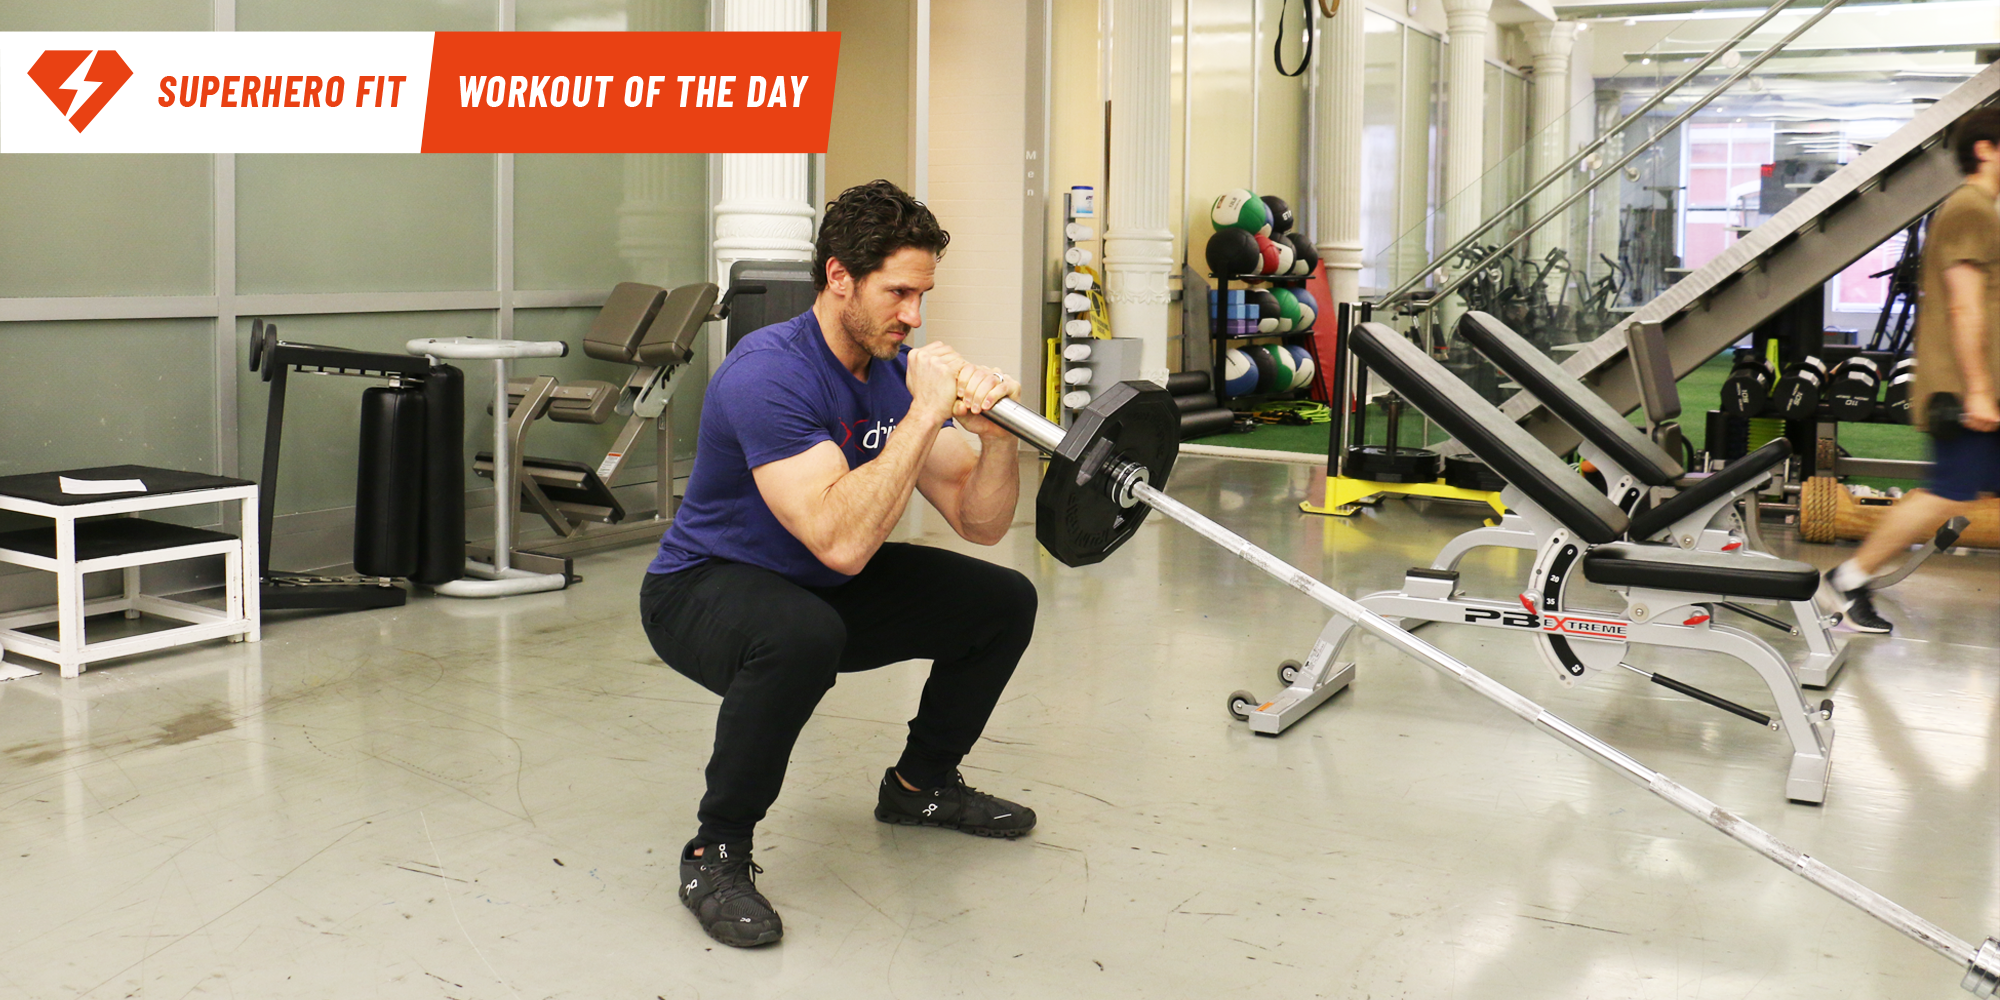 This Lower Body Move Develops Super-Powered Legs